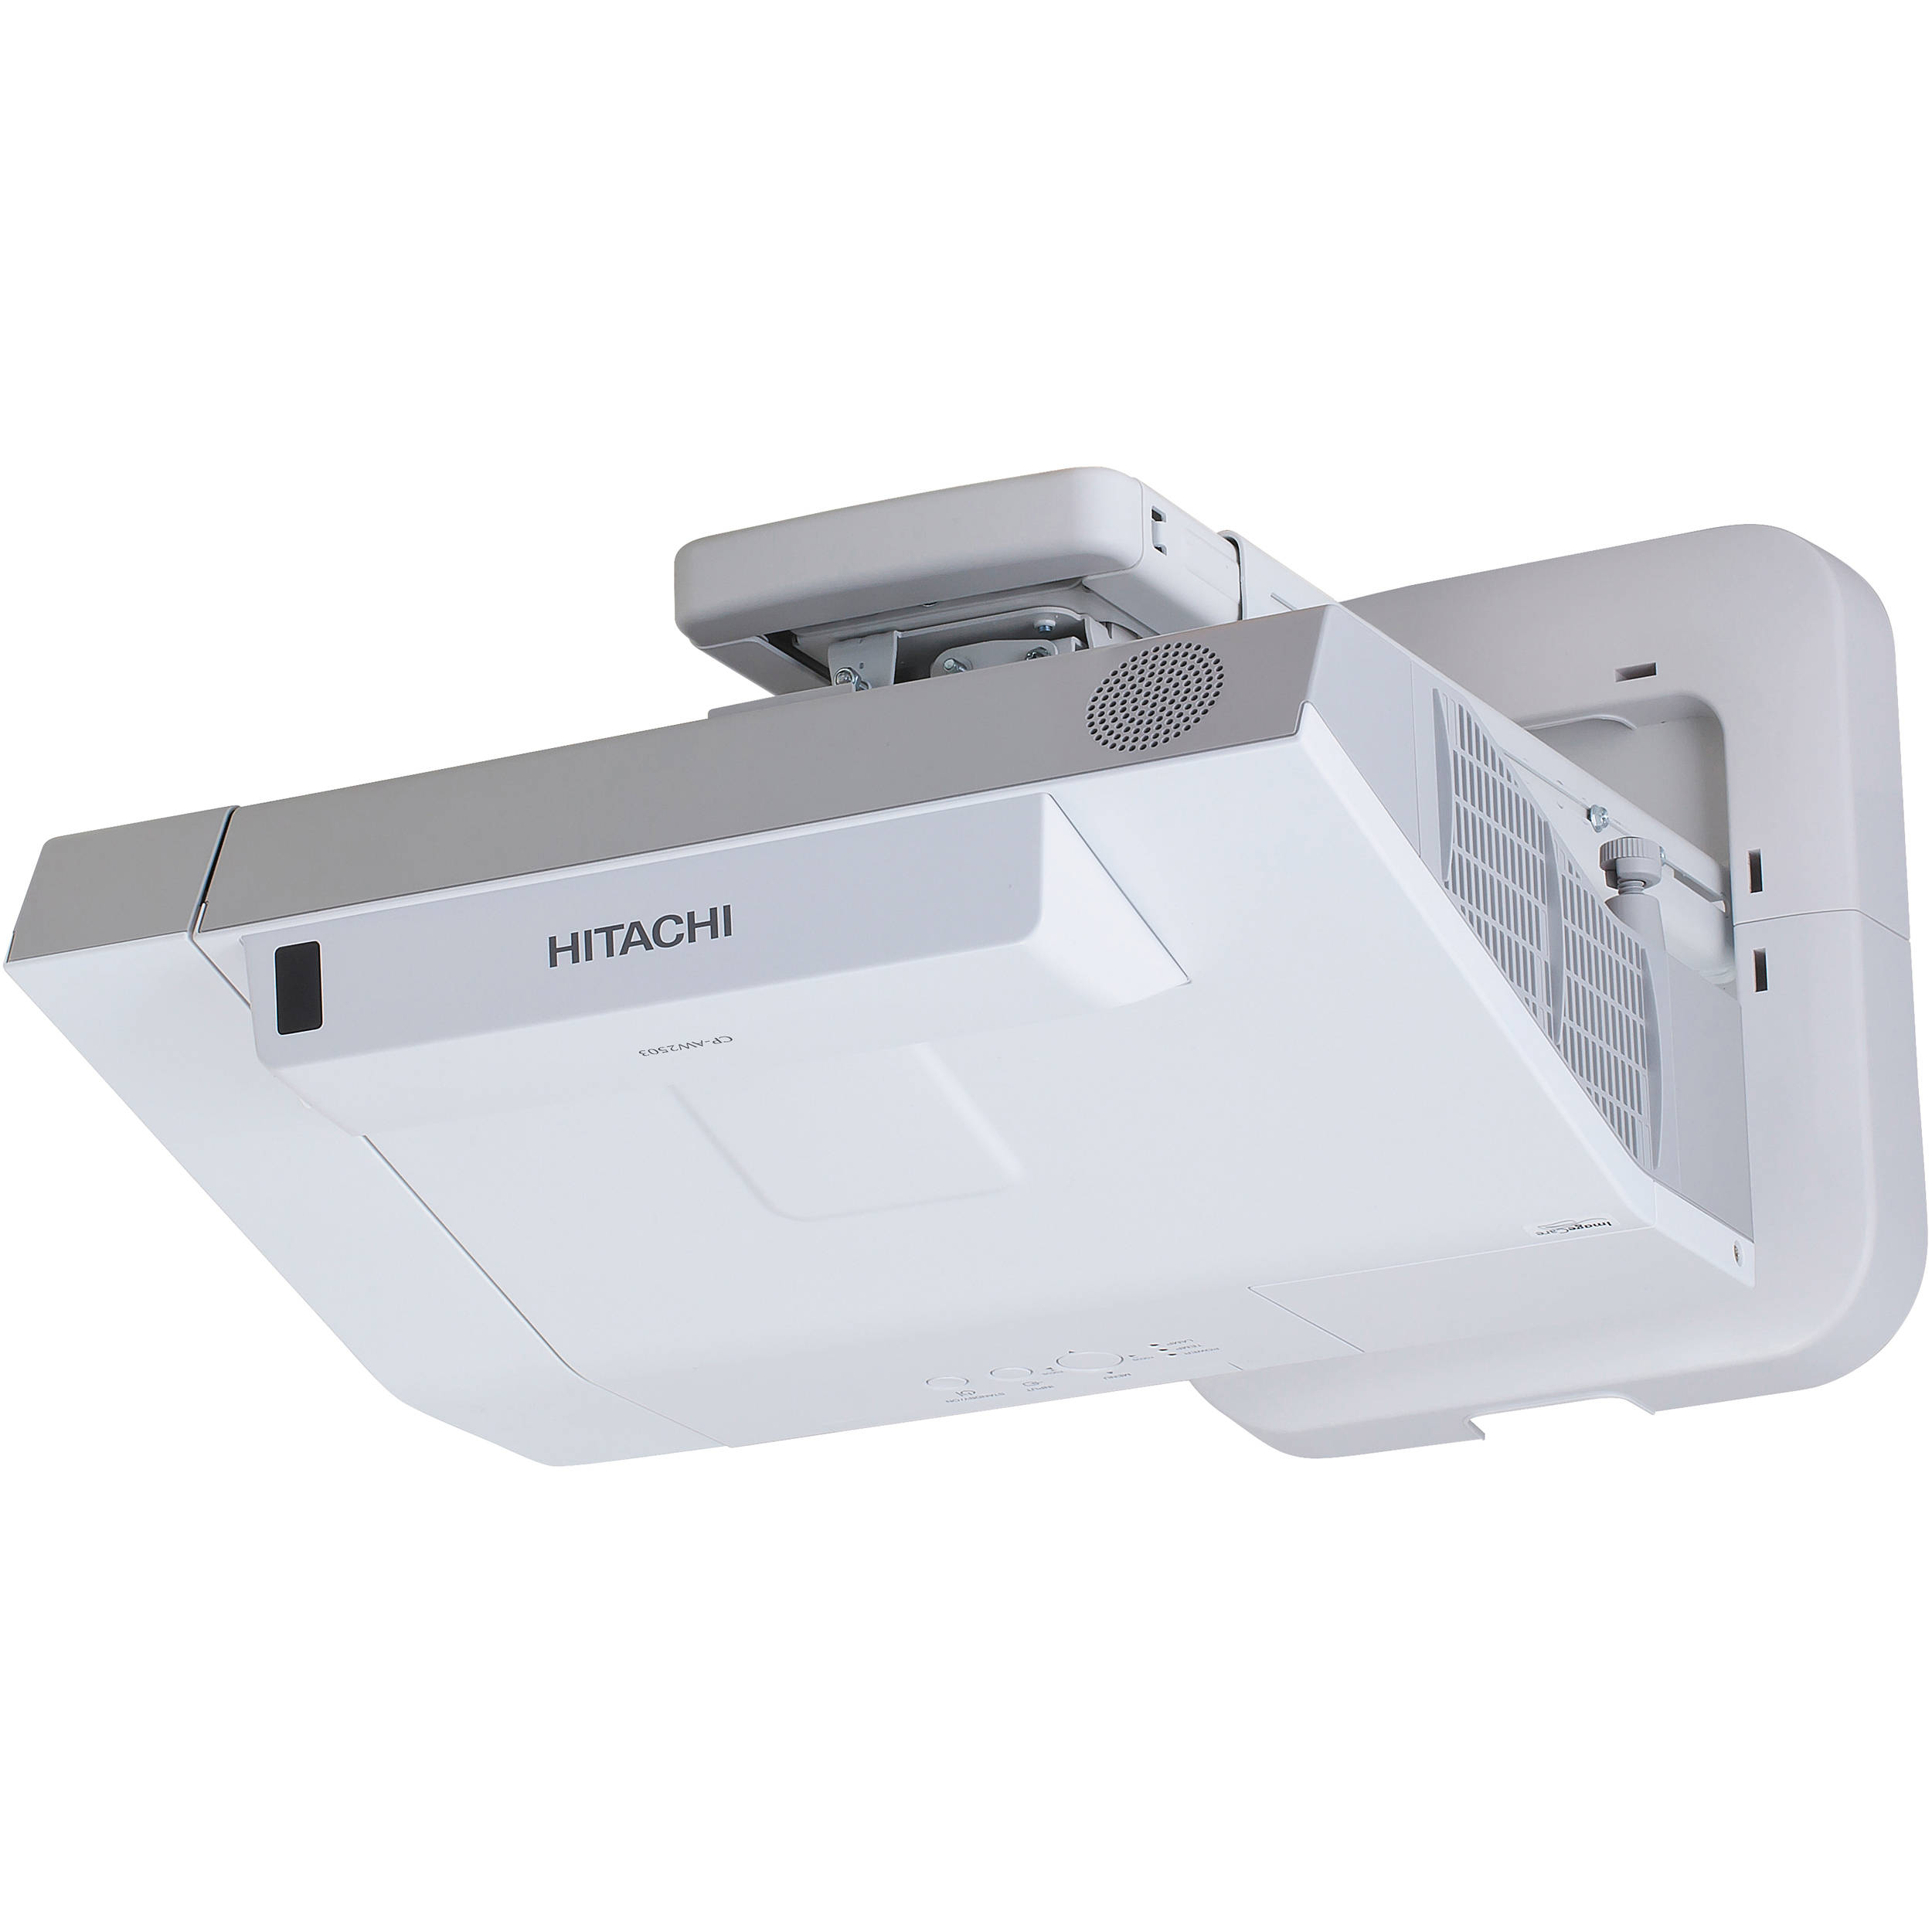 Hitachi Cp Aw2503 Ultra Short Throw 3lcd Projector Cp